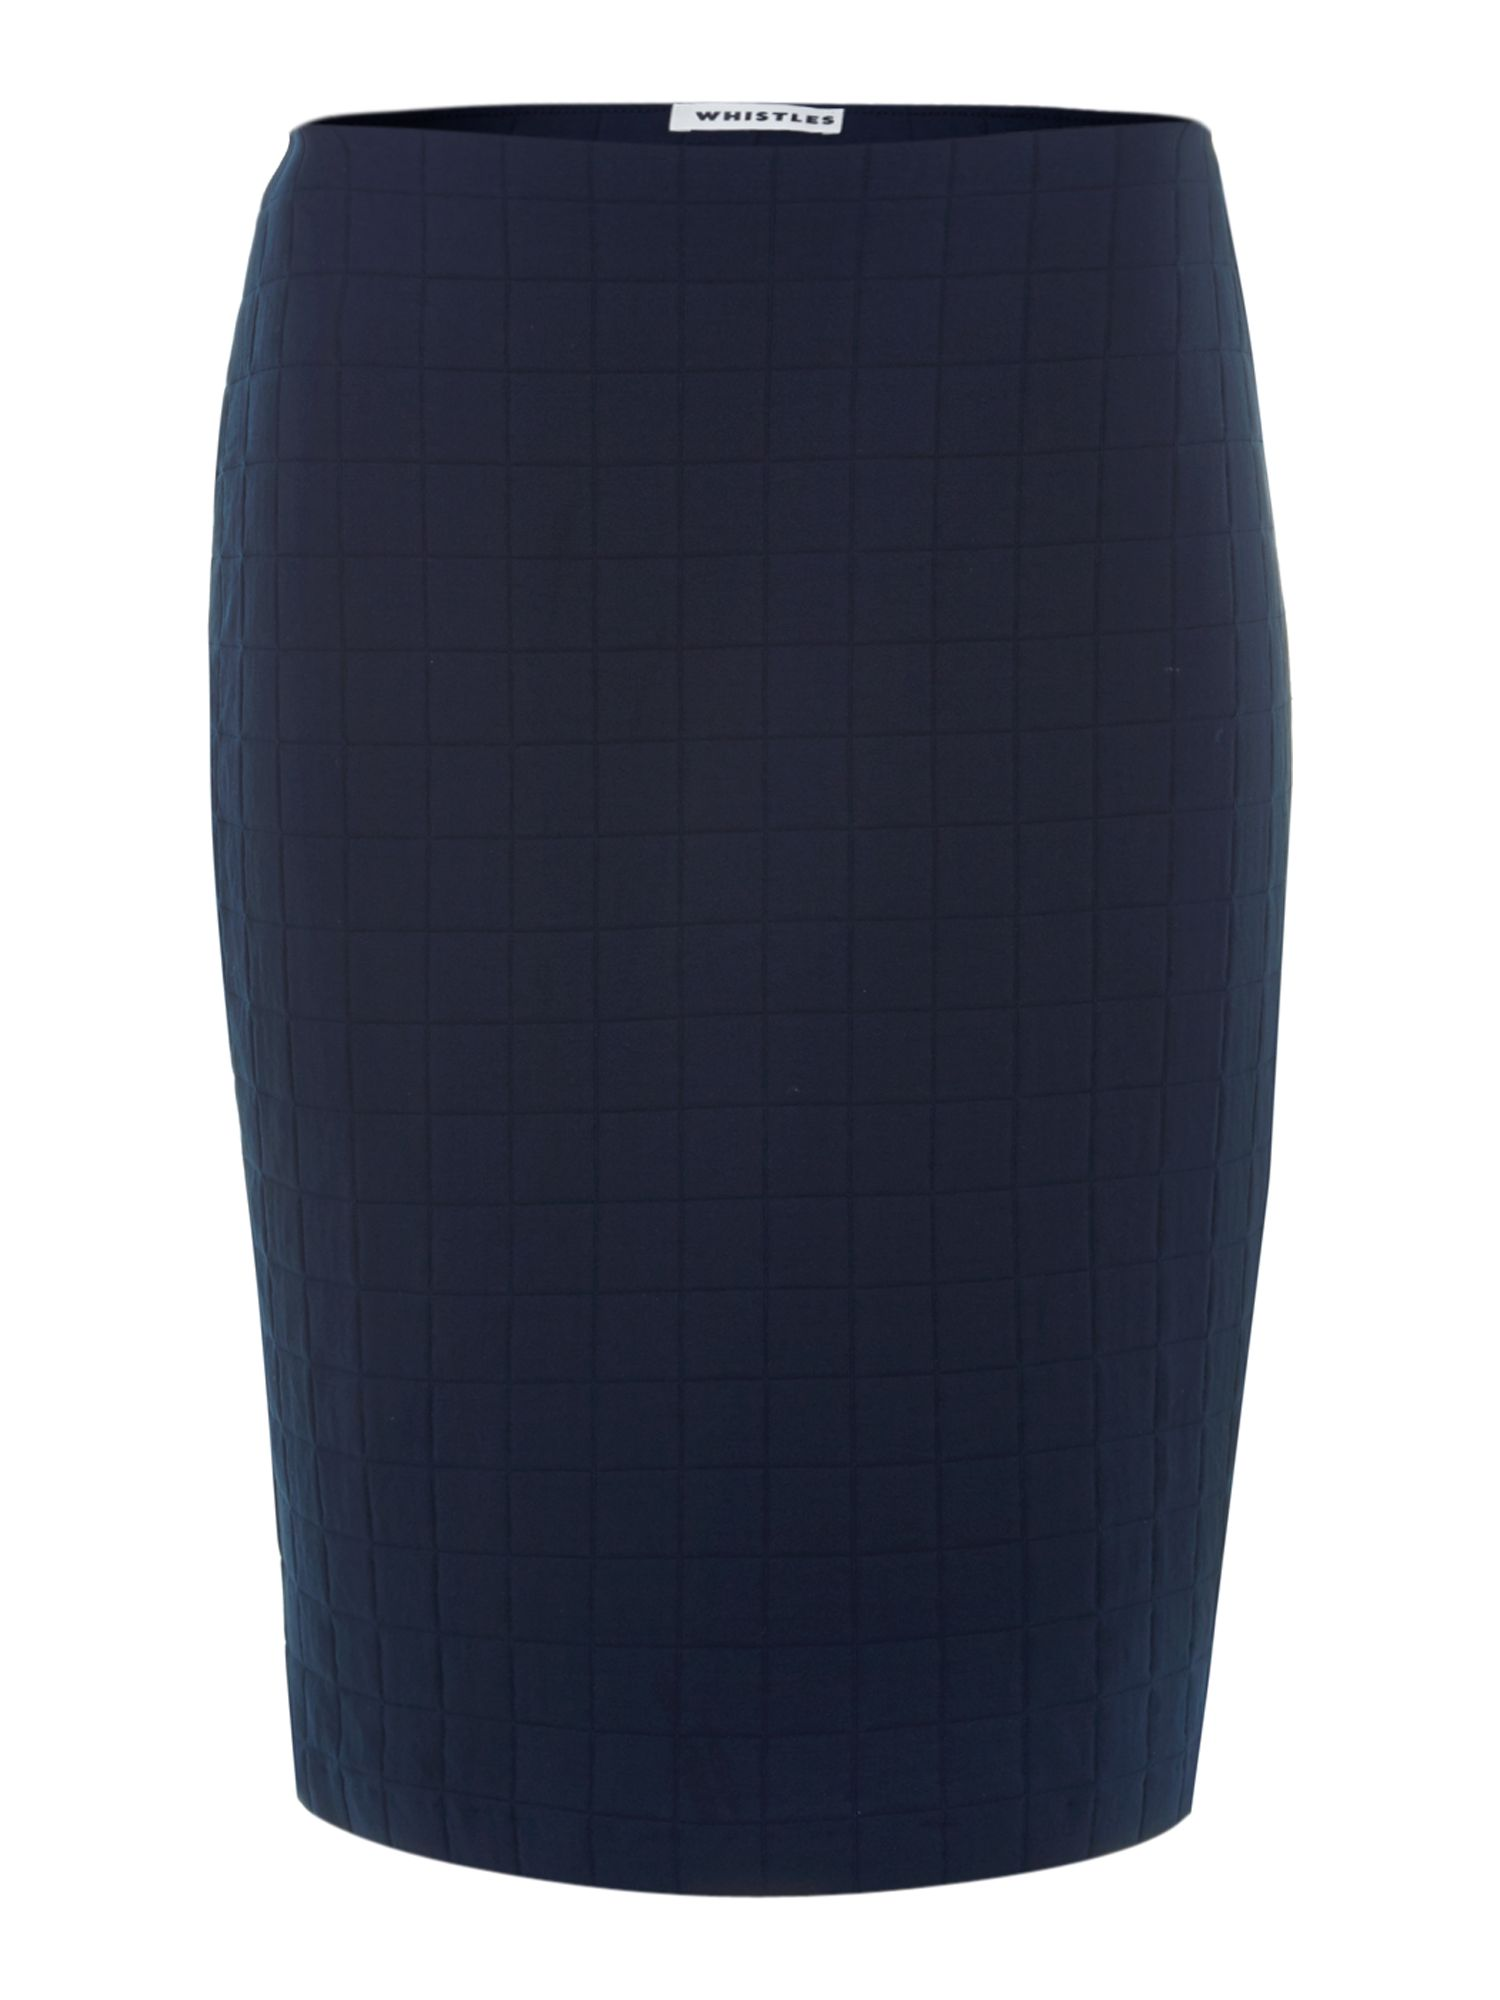 Grid jacquard tube skirt